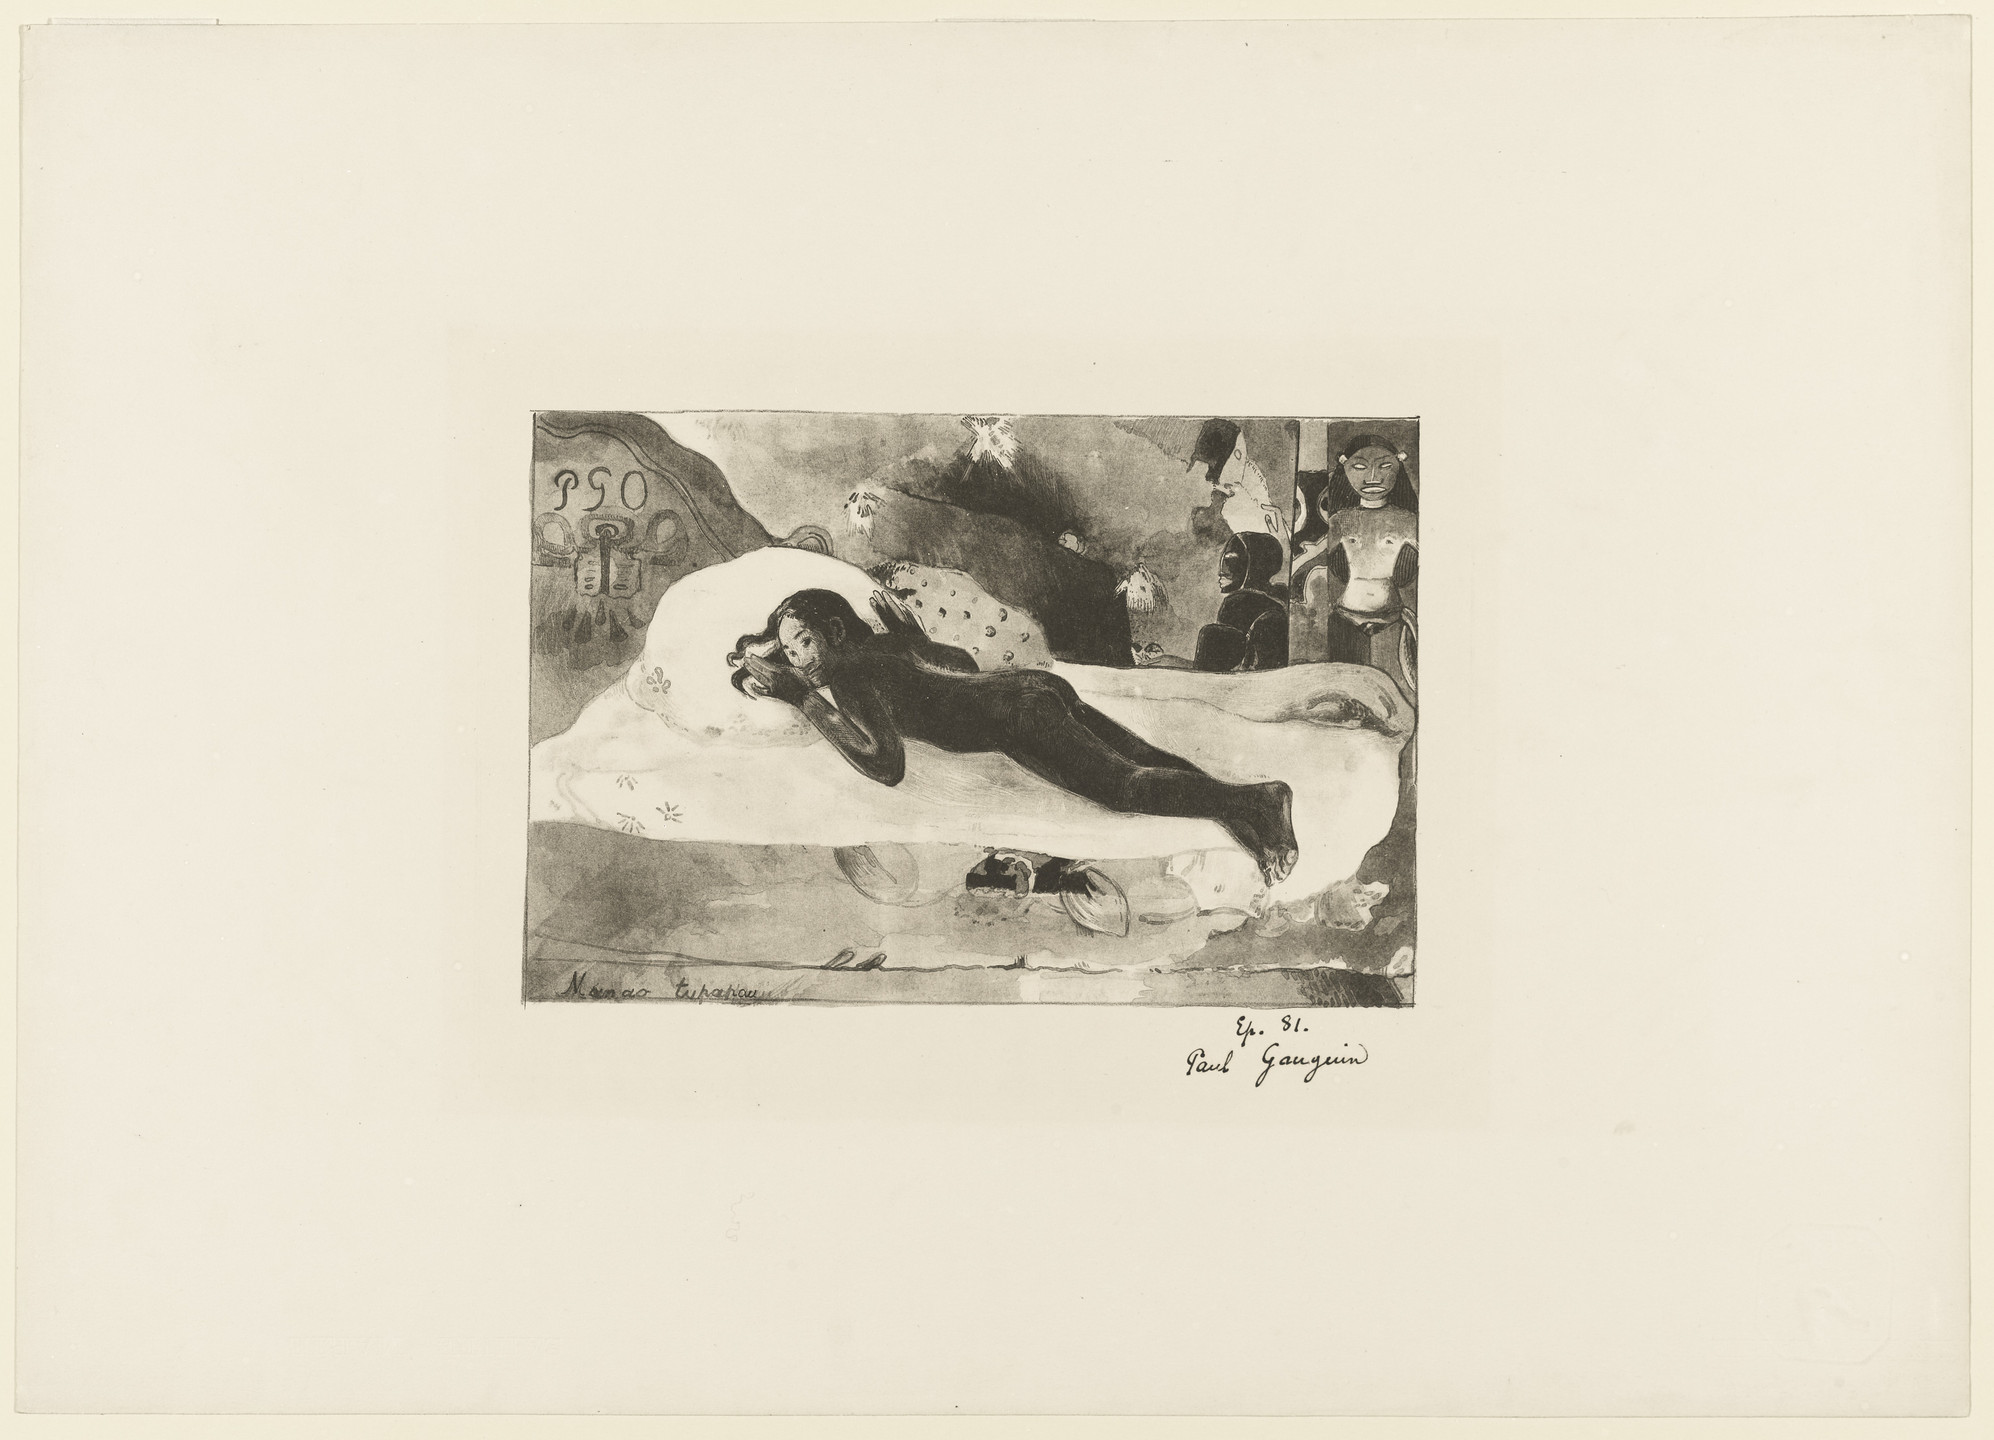 Paul Gauguin. Watched by the Spirit of the Dead (Manao Tupapau) from the portfolio L'Estampe originale, no. VI. 1894